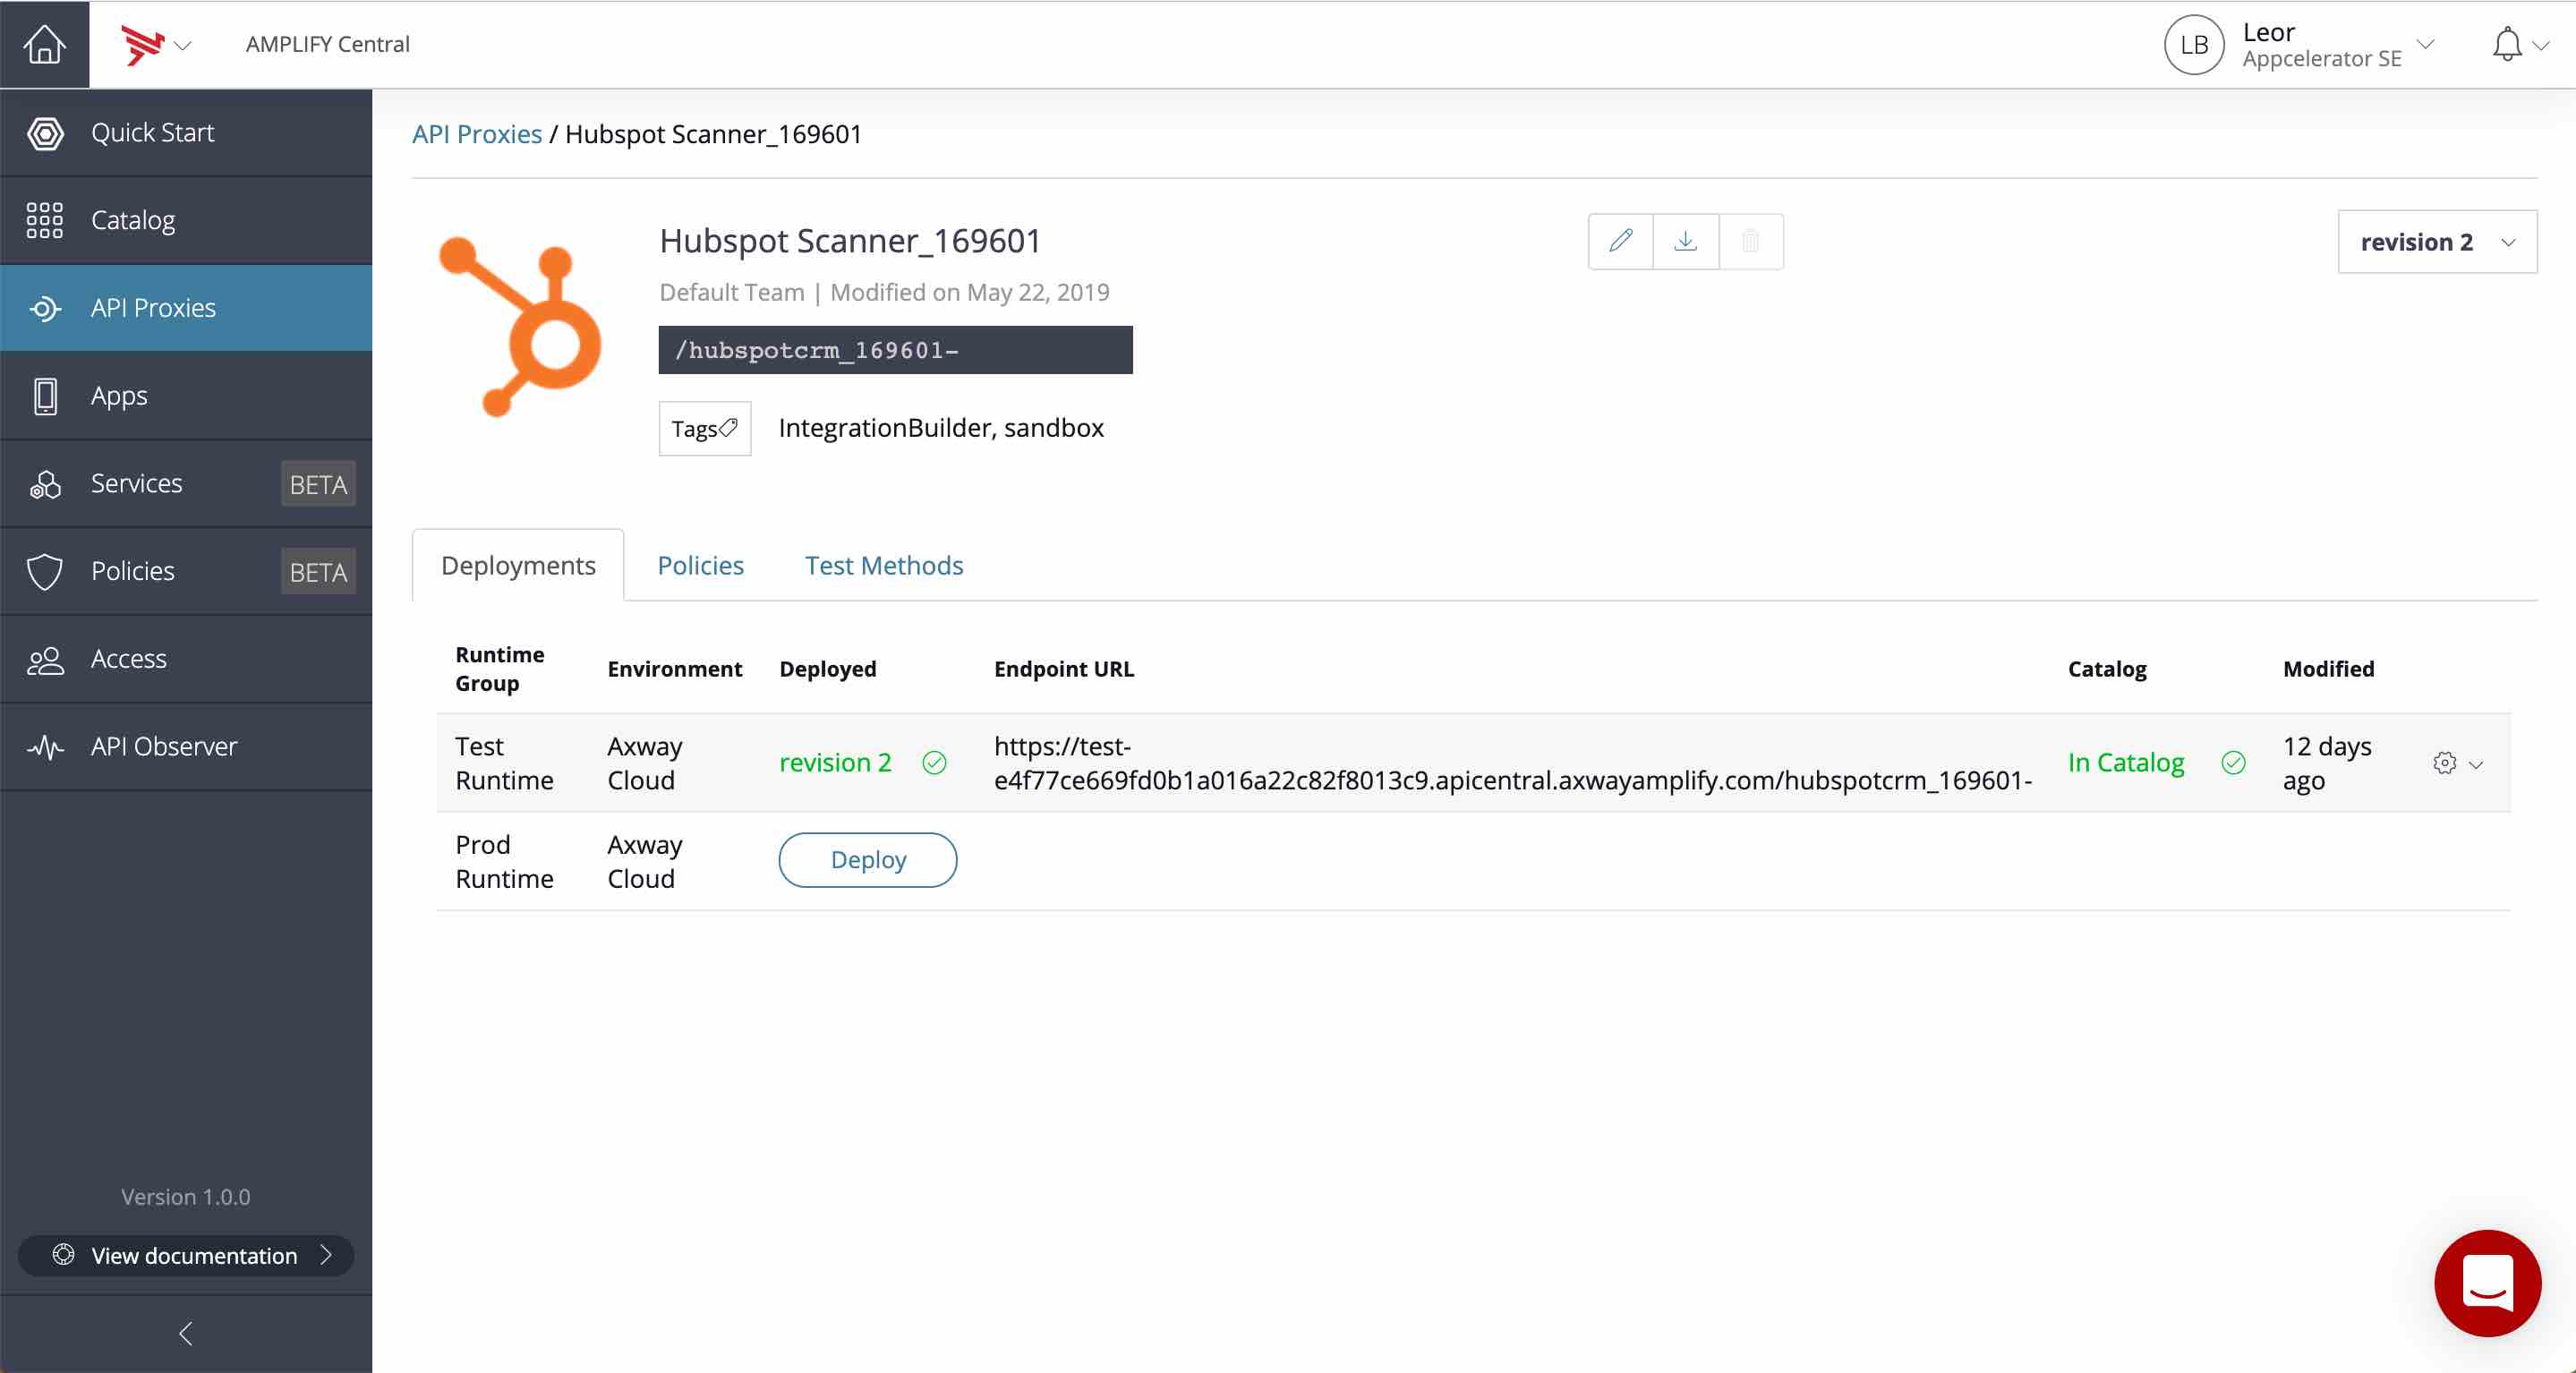 Hubspot API Proxy in AMPLIFY Central